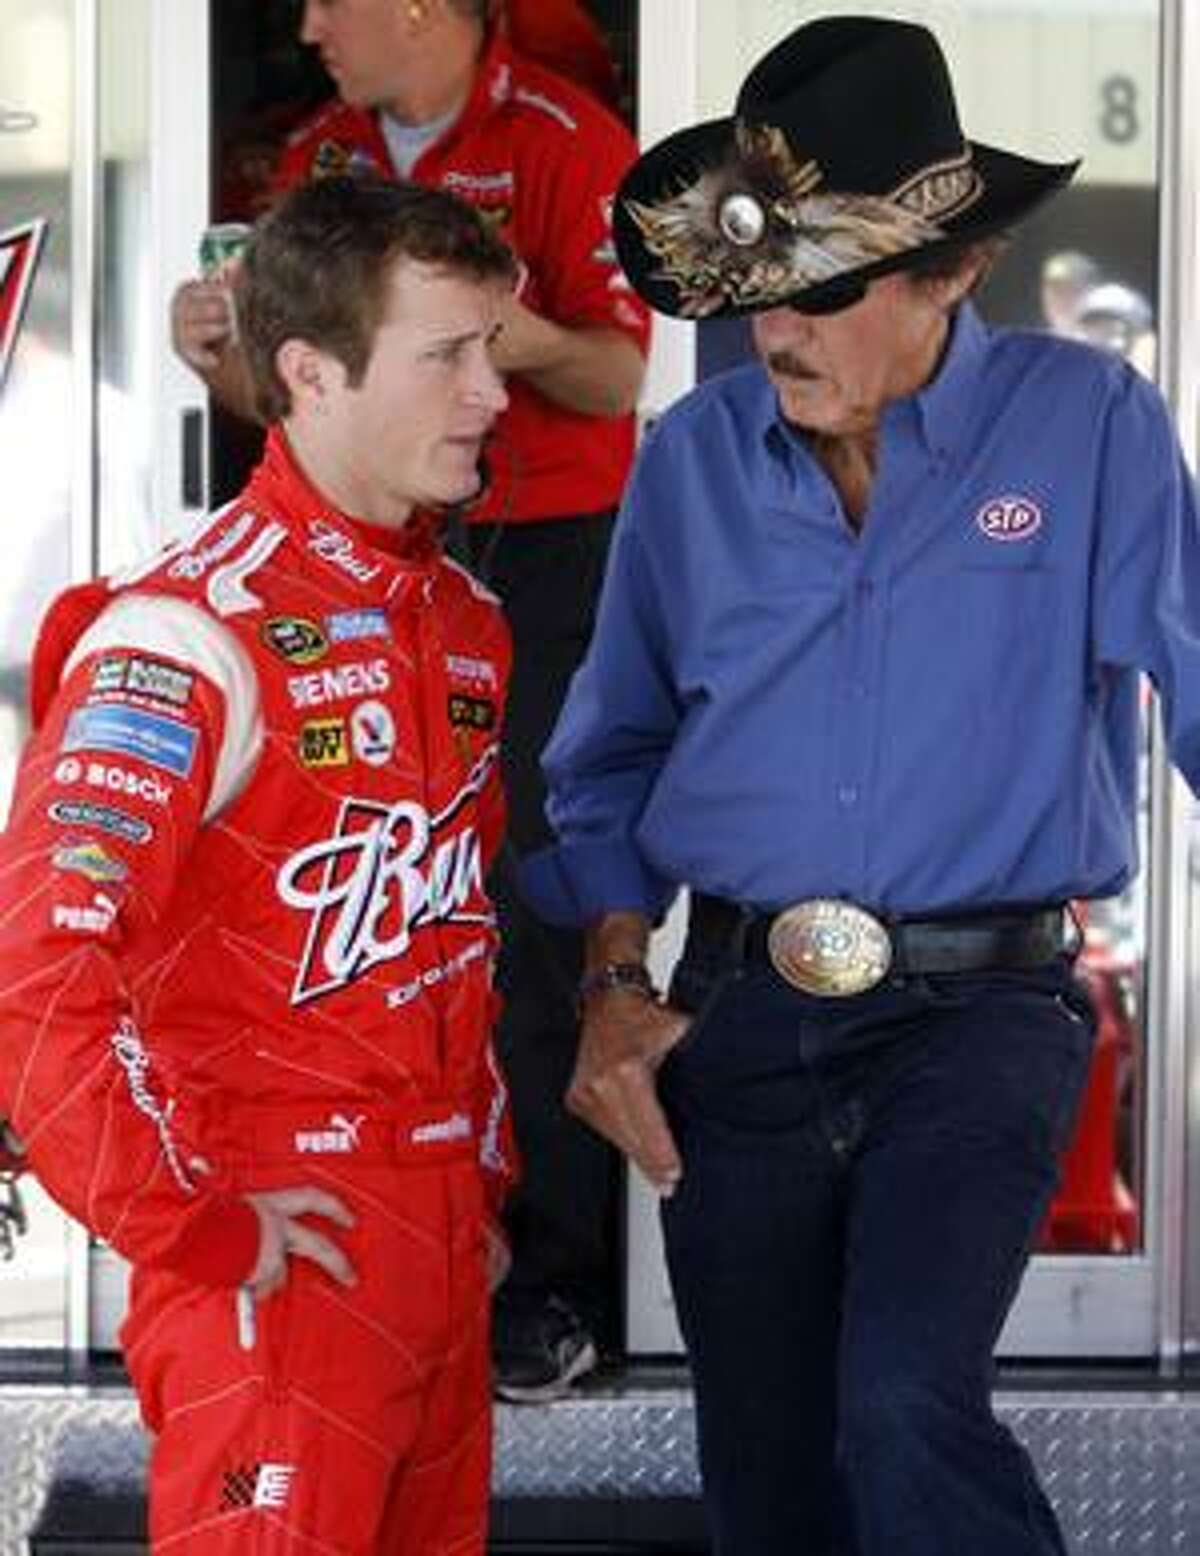 FILE - In this June 26, 2009, file photo, Kasey Kahne, left, talks with car owner Richard Petty before practice for a NASCAR auto race in Loudon, N.H. Kahne is in the final stages of completing a deal to drive for Hendrick Motorsports in 2012, The Associated Press has learned. A person familiar with Kahne's plans spoke to the AP on the condition of anonymity Tuesday, April 13, because portions of Kahne's deal are still being worked out. (AP Photo/Toby Talbot, File)